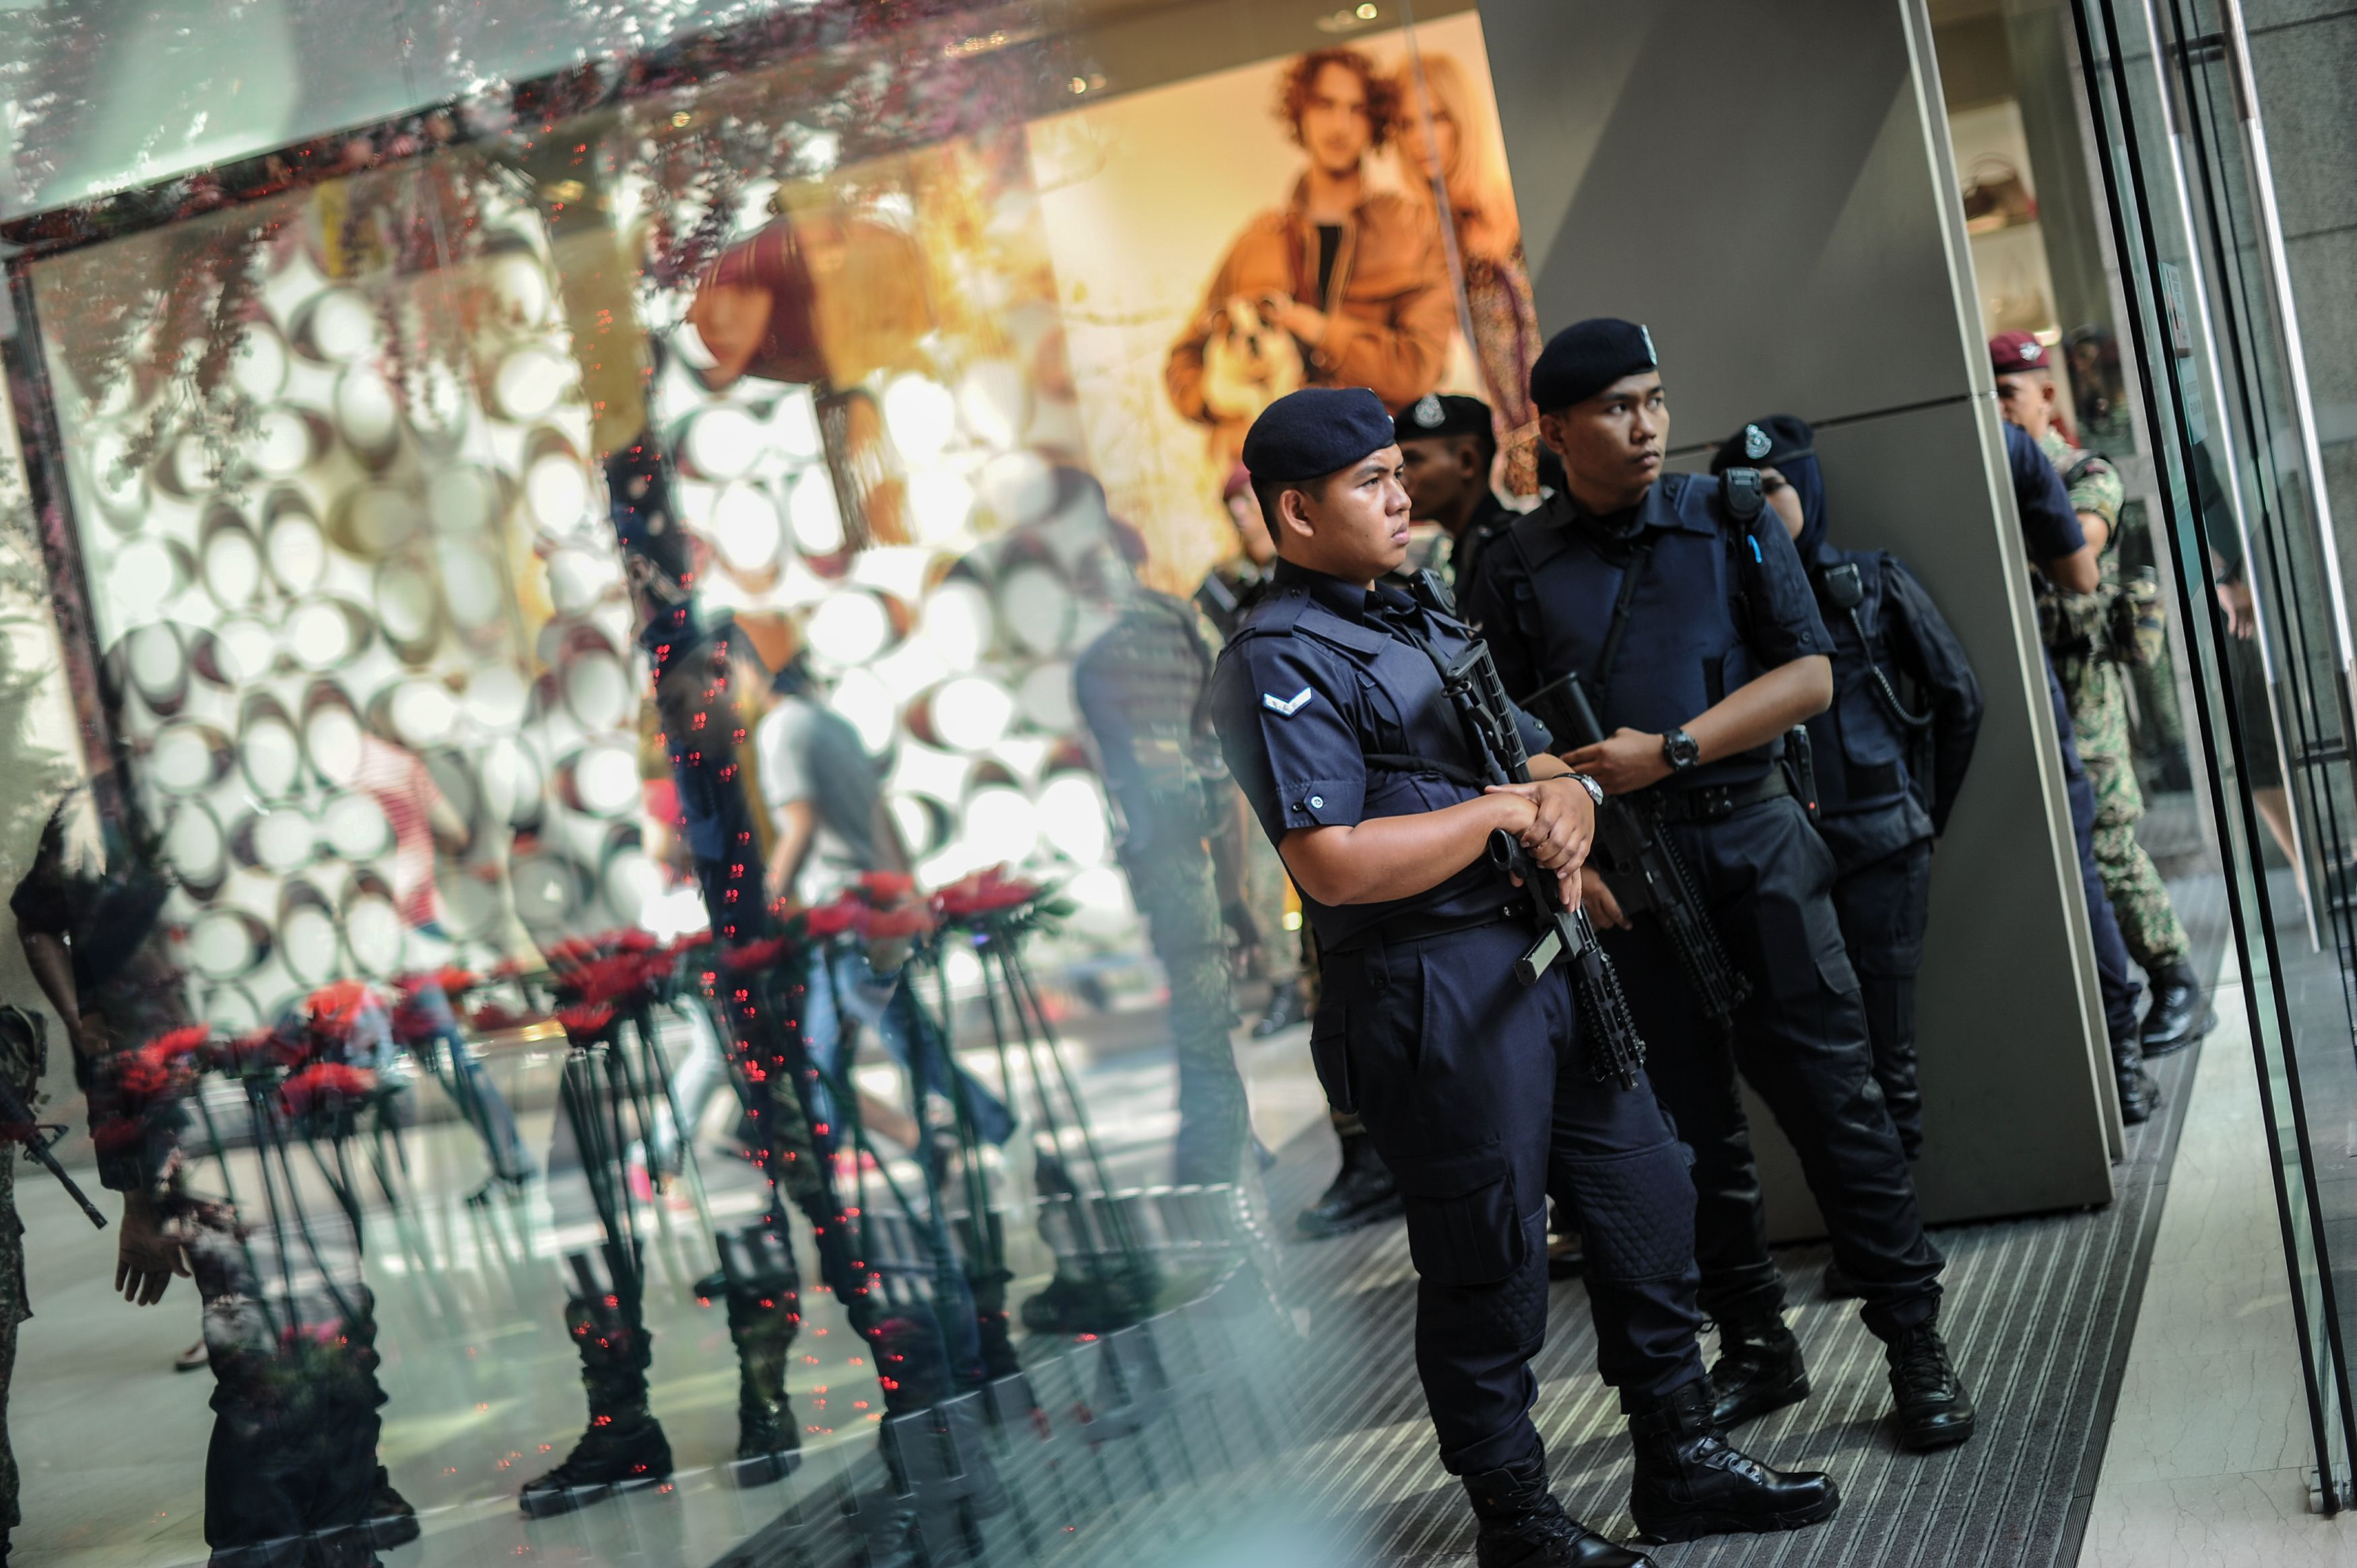 Malaysian police stand guard before the arrival of Prime Minister Najib Razak during a joint police-army exercise at a shopping mall in Kuala Lumpur on Feb. 22, 2016